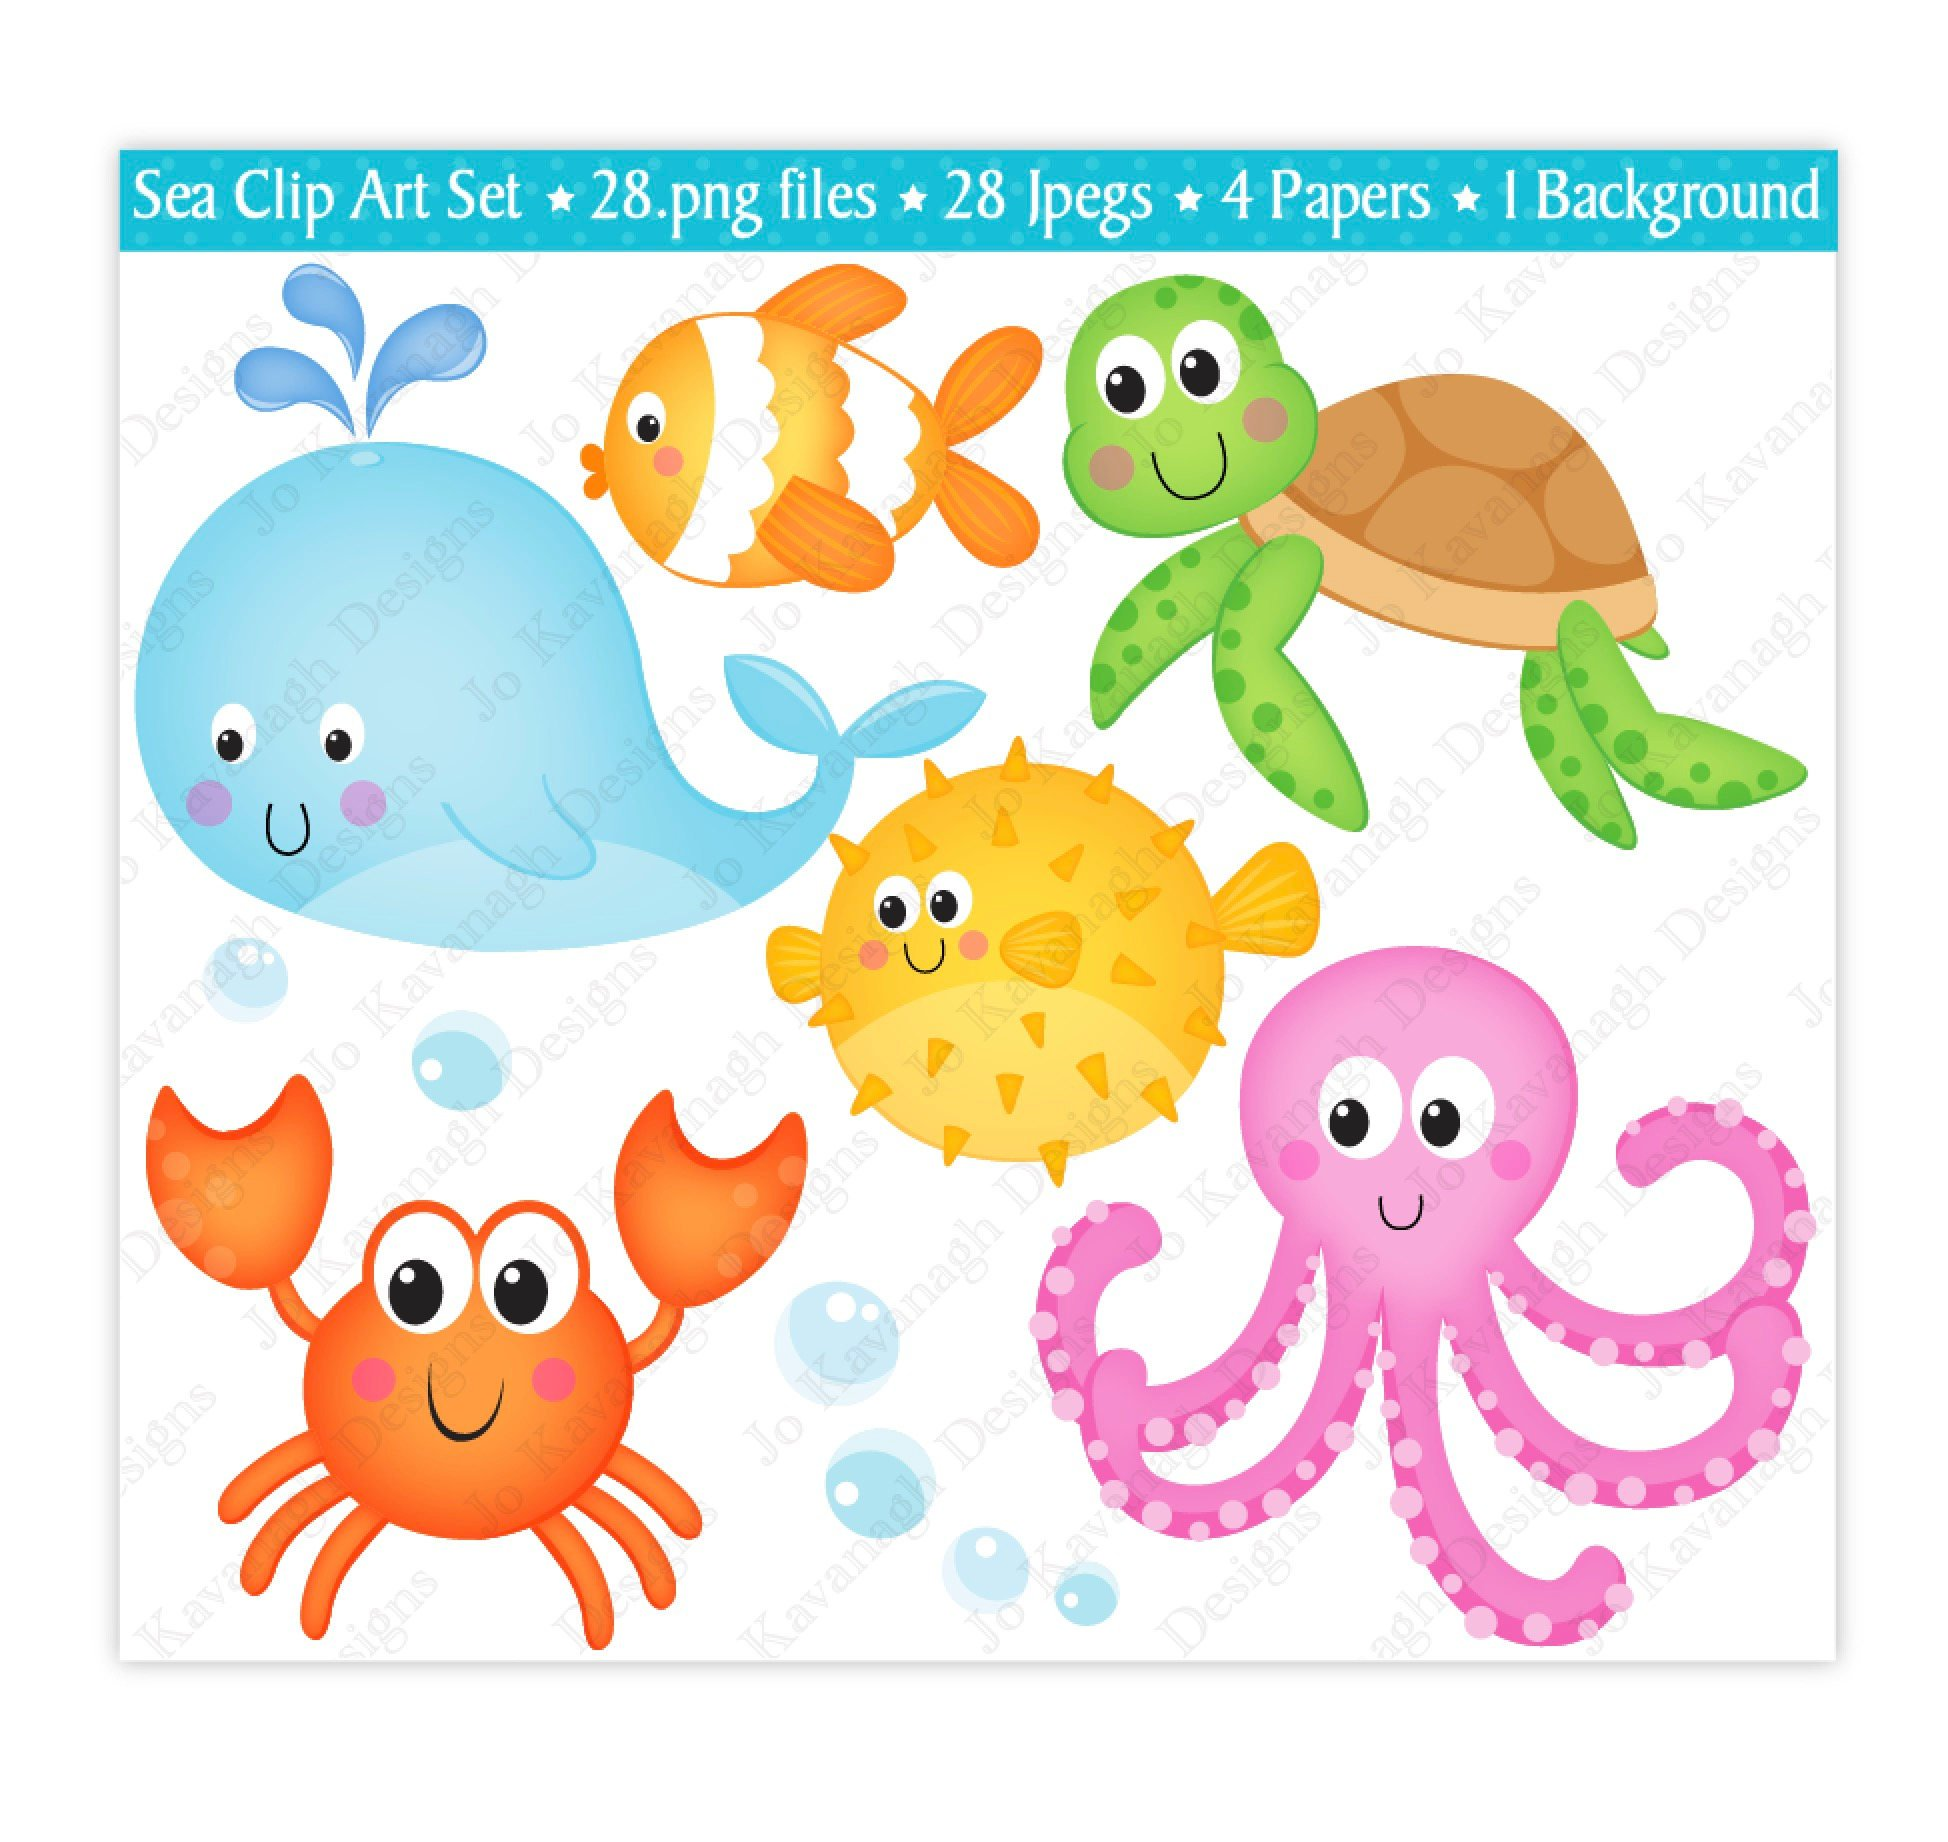 under the ocean clipart at getdrawings com free for personal use rh getdrawings com under the sea clip art free printable under the sea clip art black and white